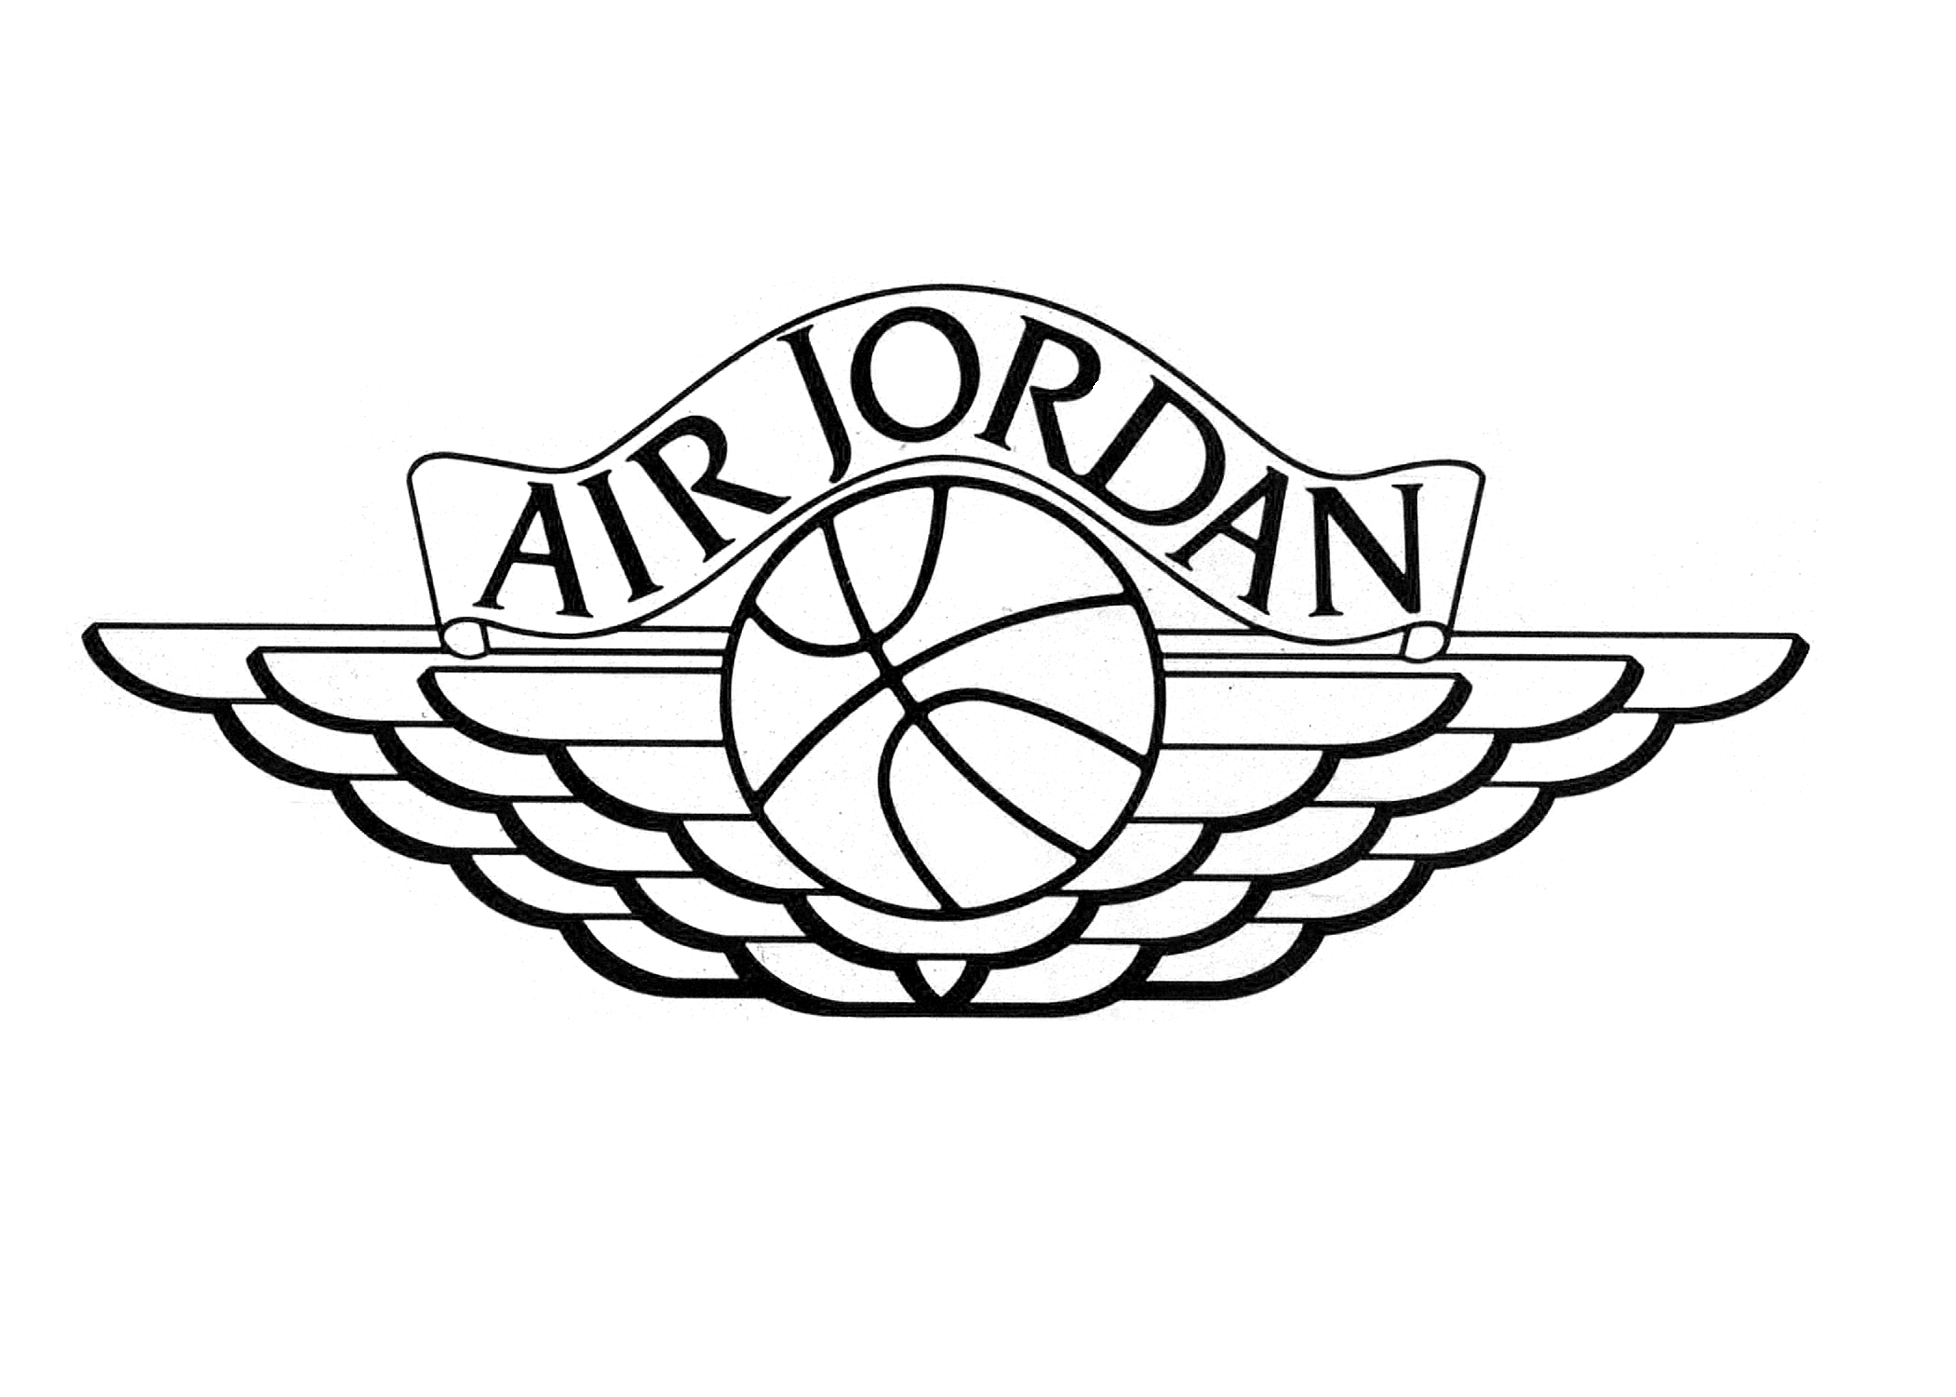 Inside Access An Evolving Jordan Brand Continues To